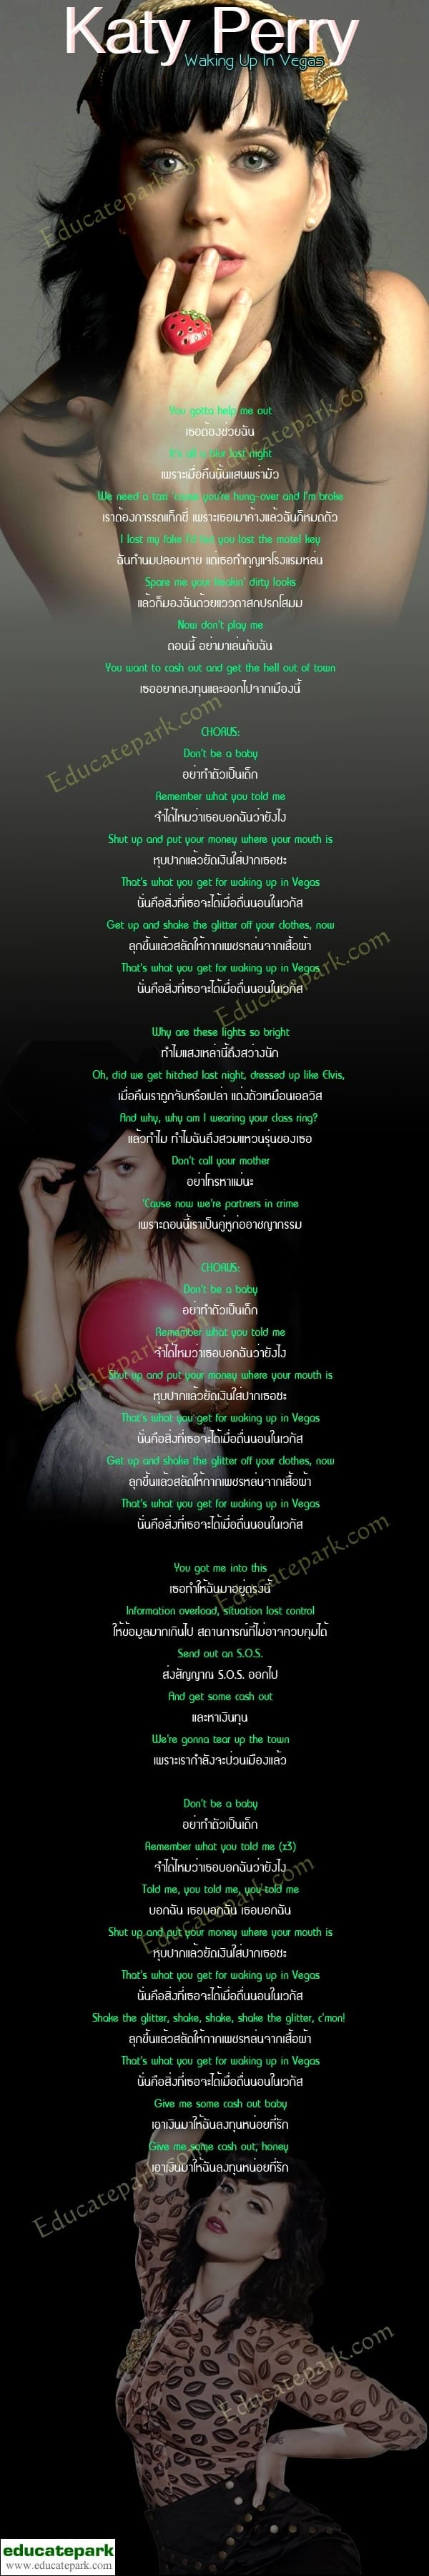 แปลเพลง Waking Up In Vegas - Katy Perry